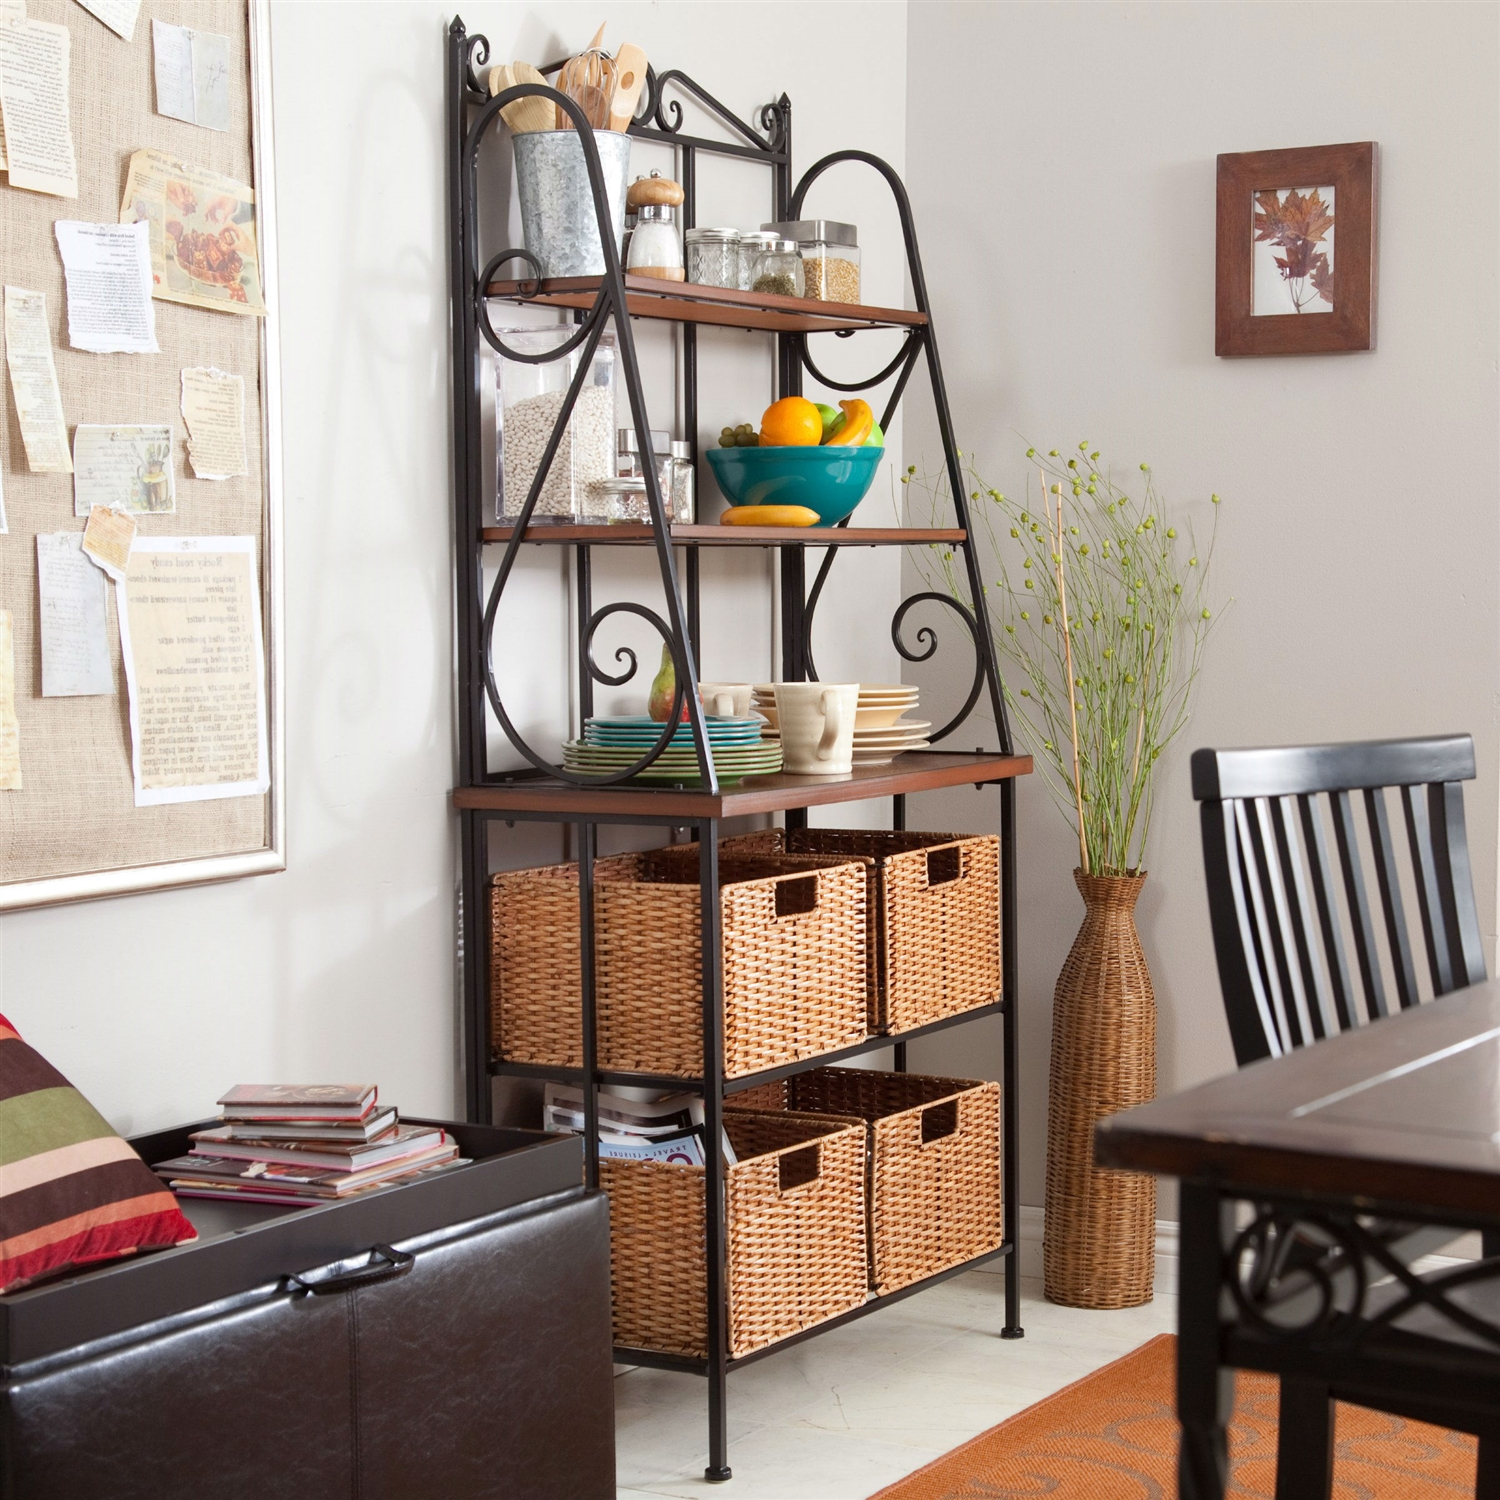 Durable Metal and Wood Bakers Rack with Classic Wicker Basket